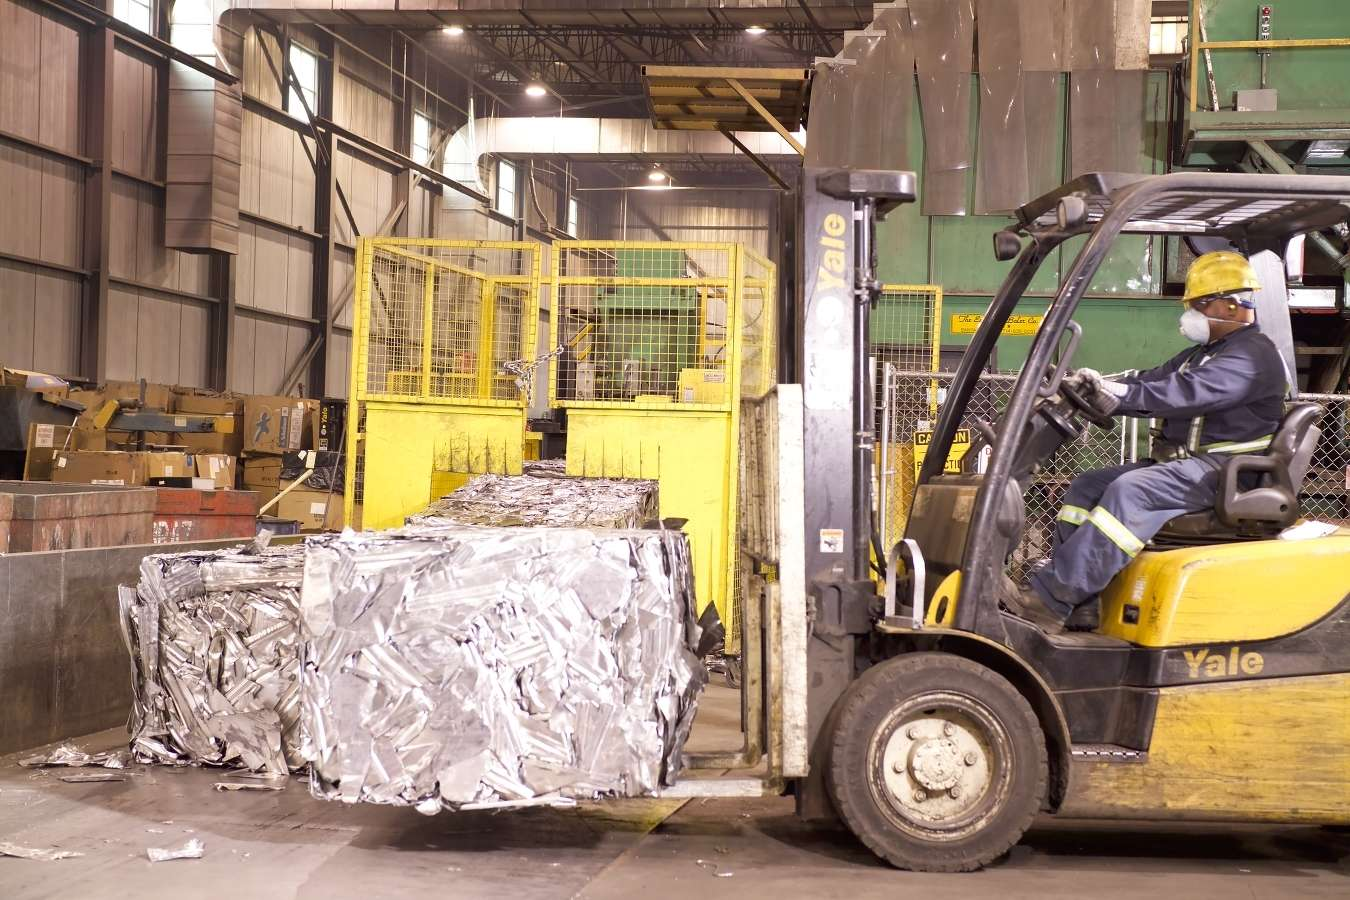 Forklift transporting scrap metal for recycling